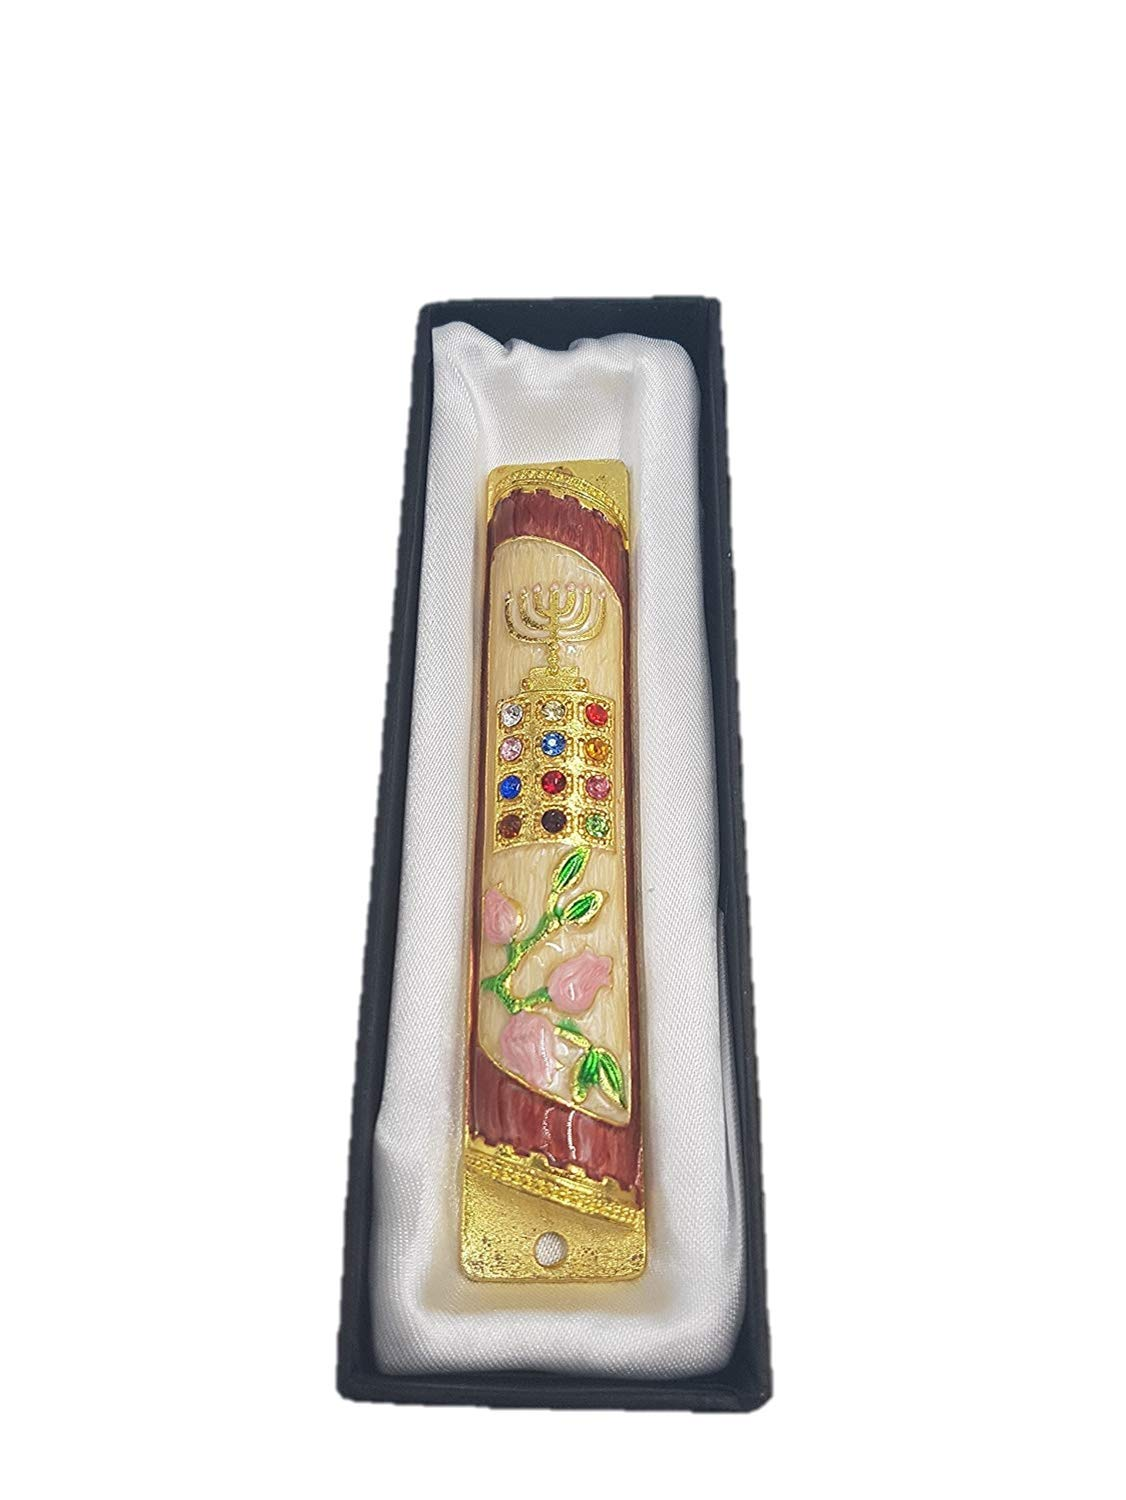 Yaliland Mezuzah case + Kosher 7cm Scroll klaf Parchment Priestly Breastplate Israel Tribes HOSHEN Enamel Door Mezuza 5'' by Yaliland